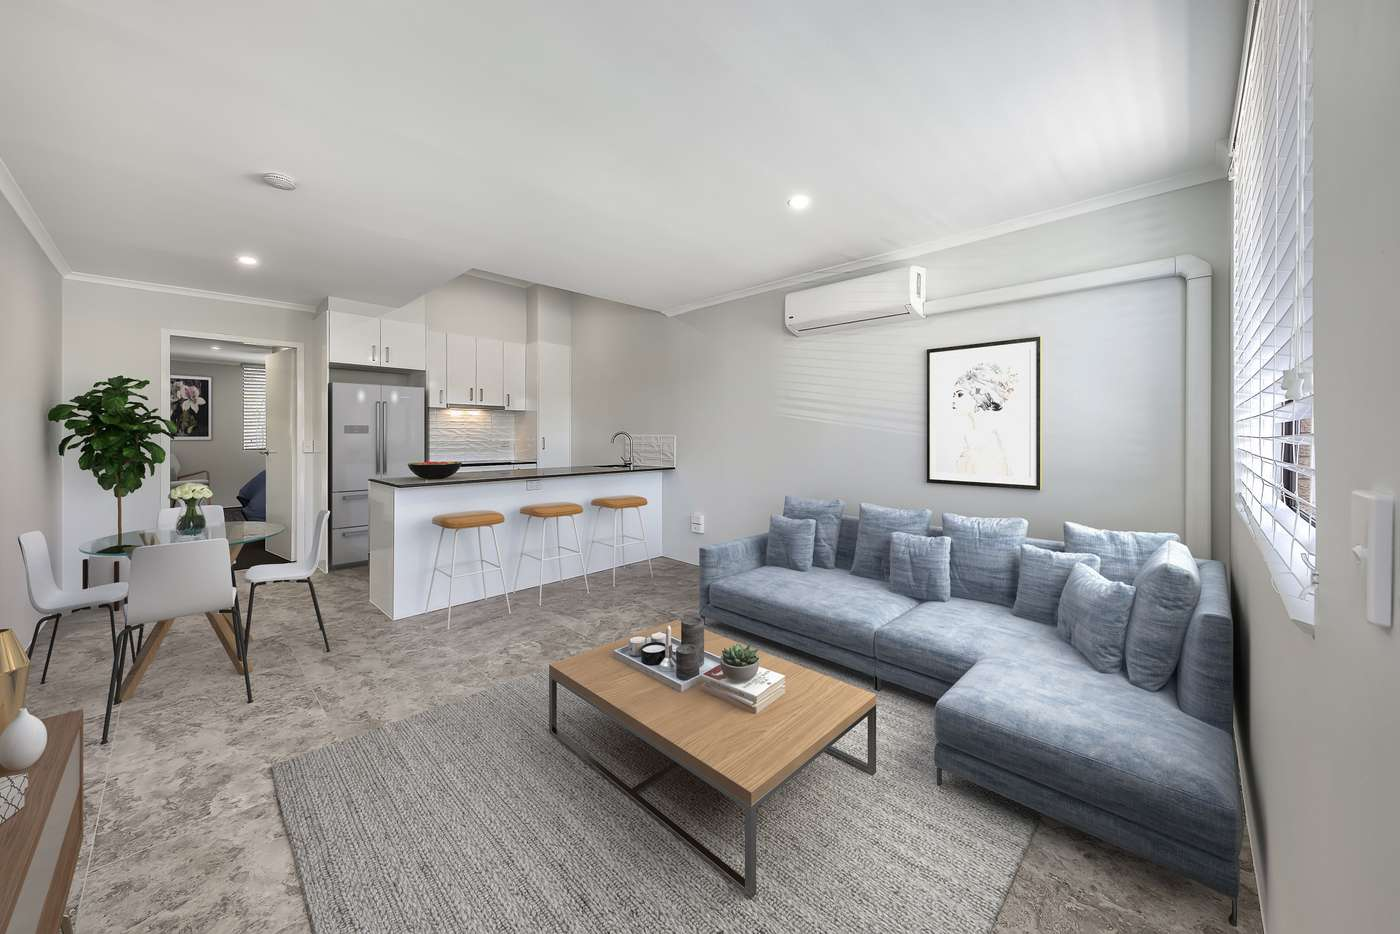 Main view of Homely apartment listing, 5/3 Gardiner Street, Alderley QLD 4051